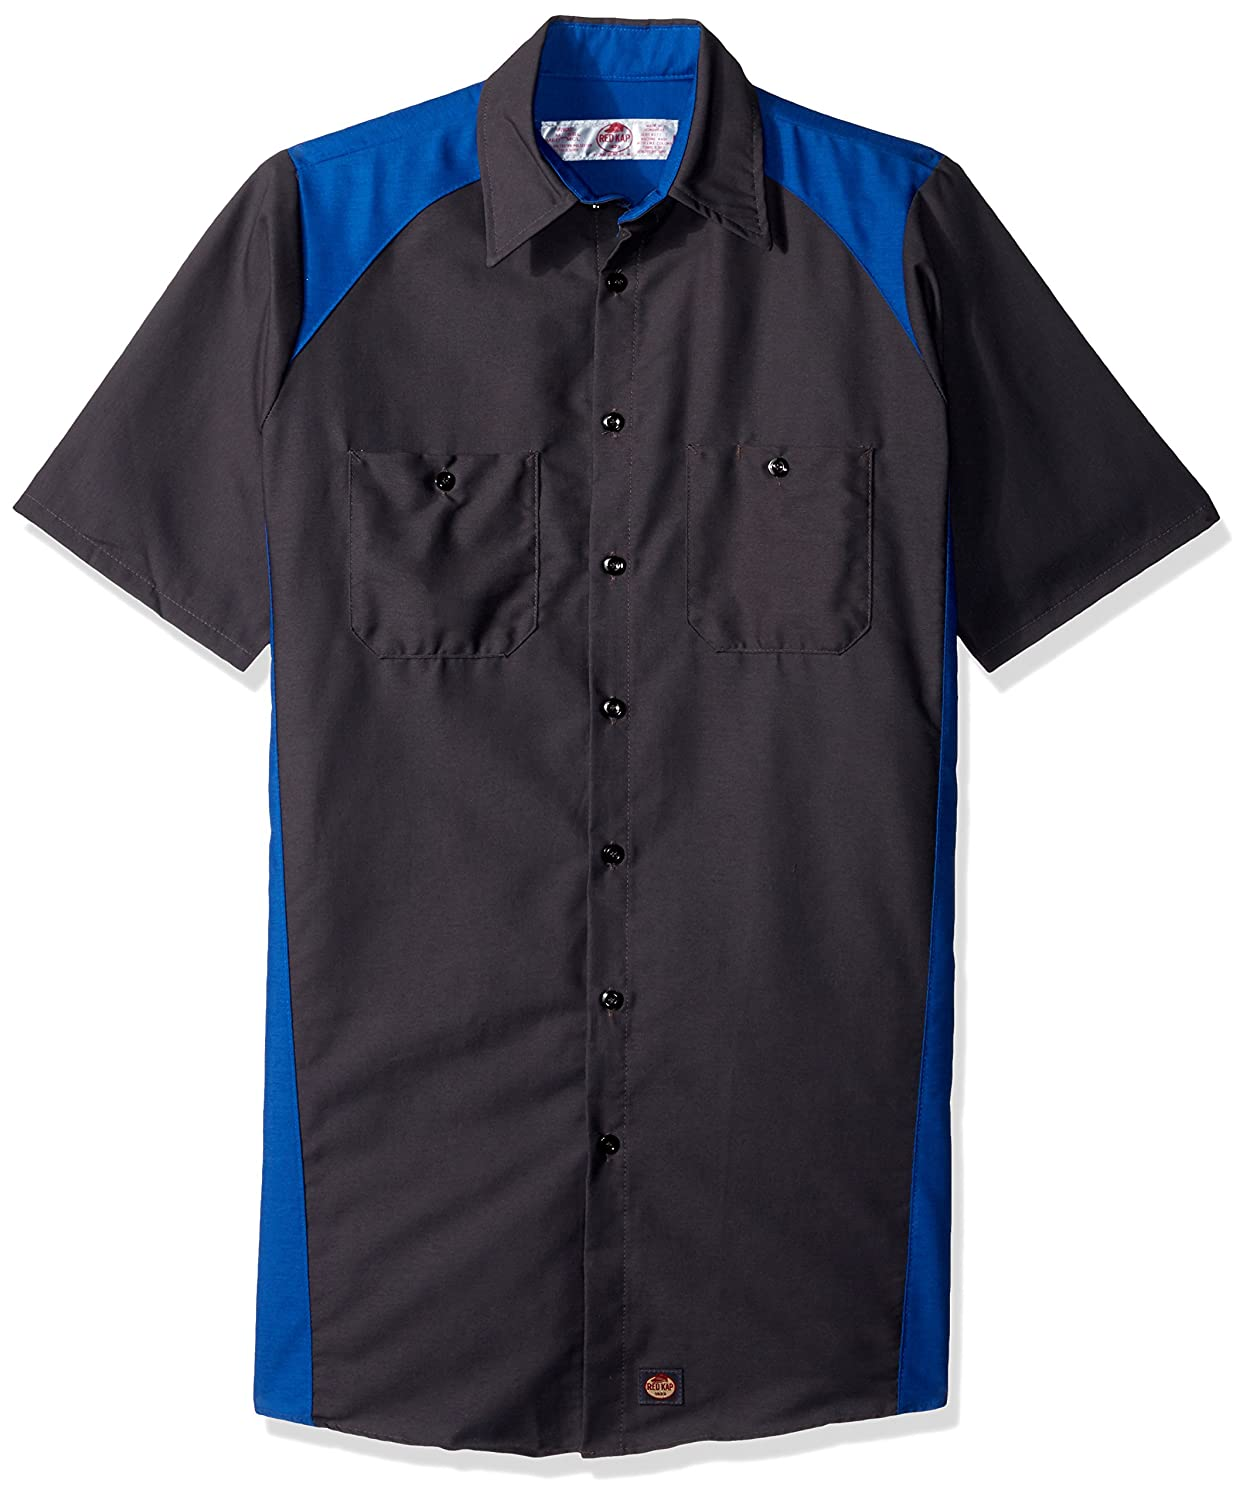 Red Kap SHIRT メンズ B01N7J2FKI XXXX-Large|Charcoal/Royal Blue Charcoal/Royal Blue XXXX-Large